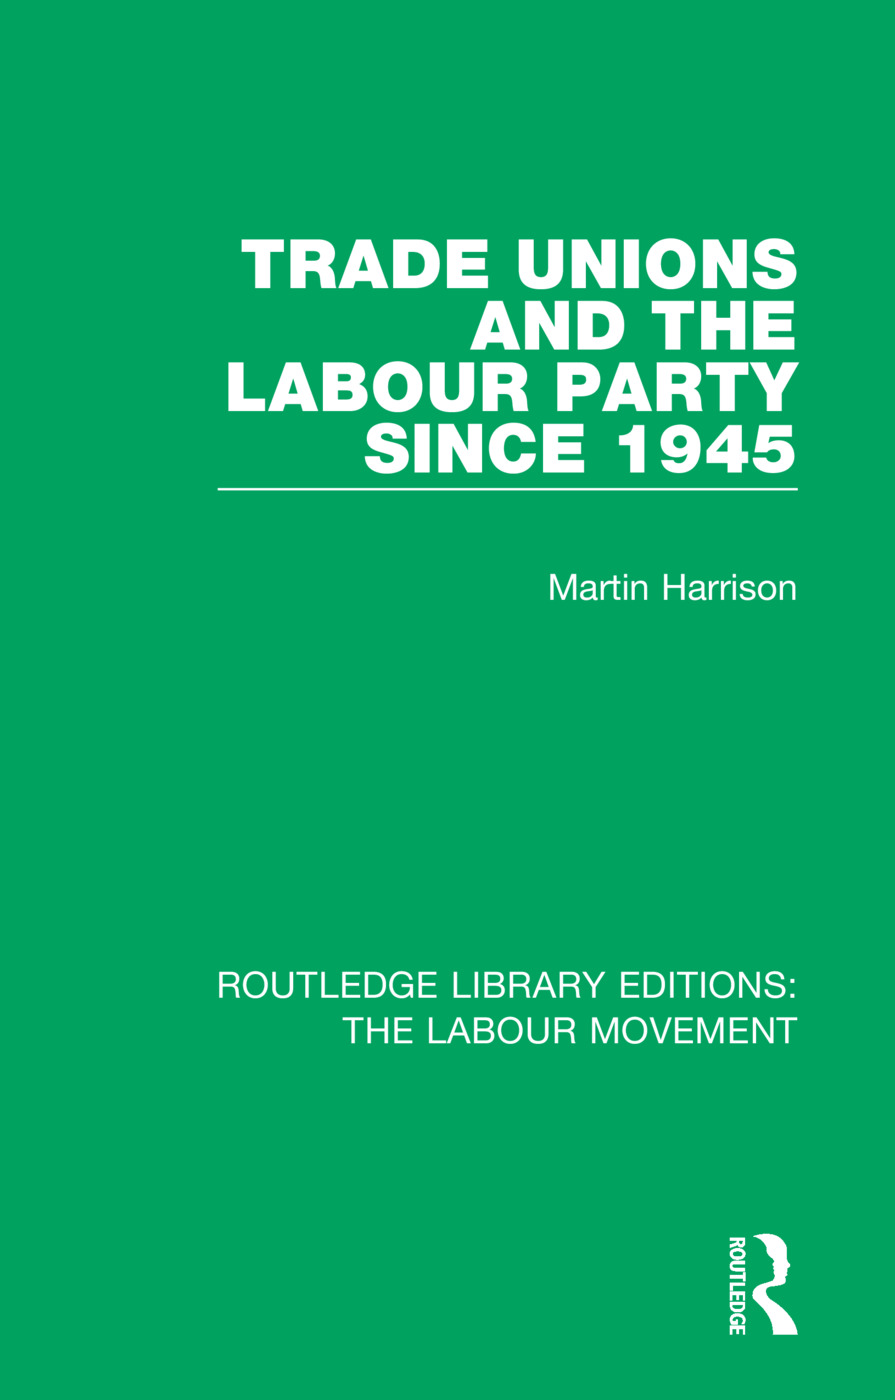 Trade Unions and the Labour Party since 1945 book cover